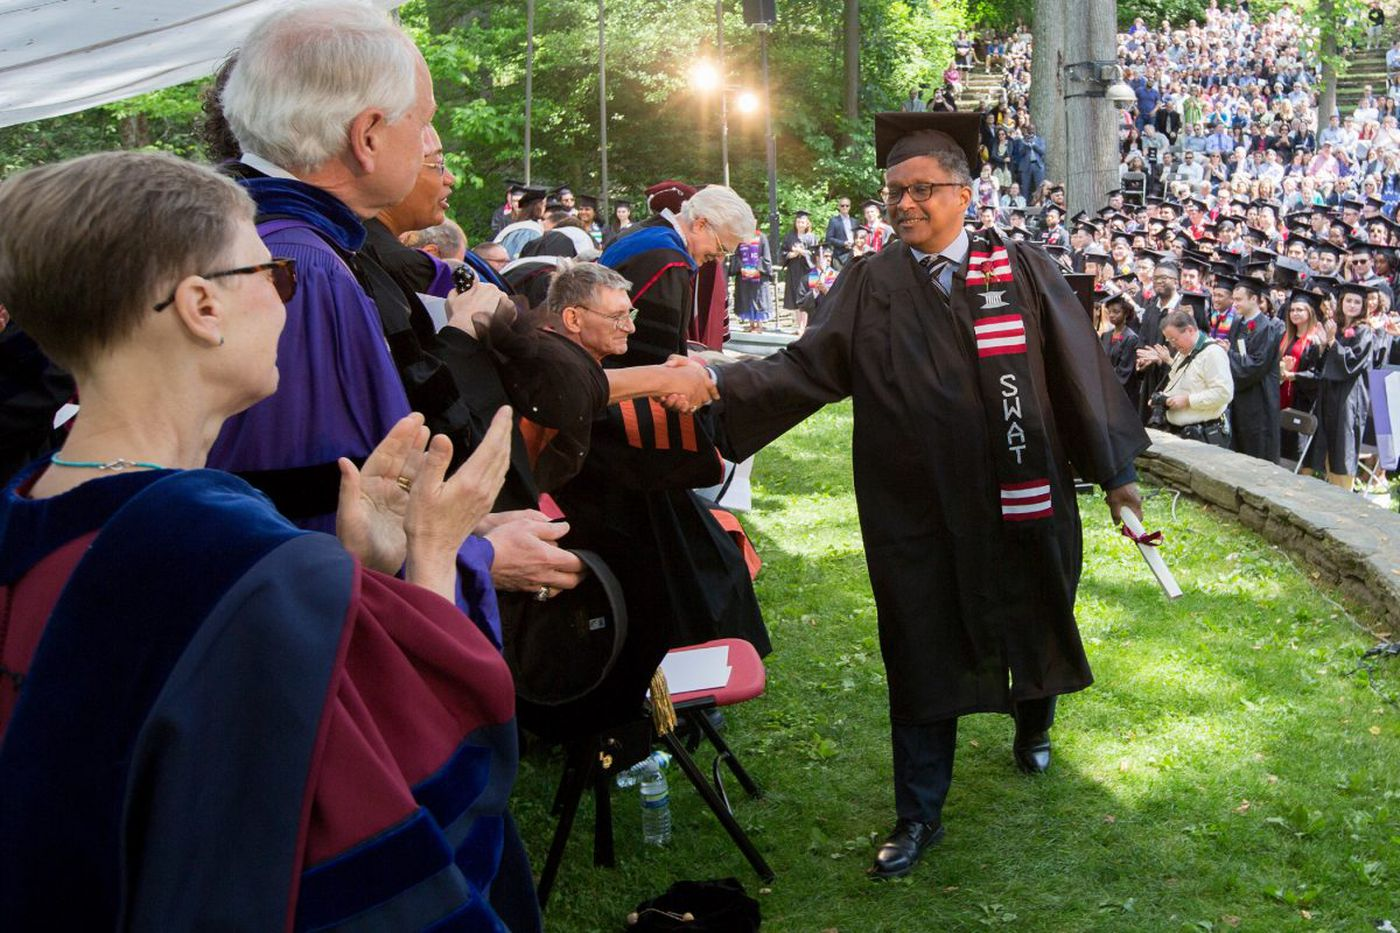 After 42 years, Swarthmore's 1975 class president graduates